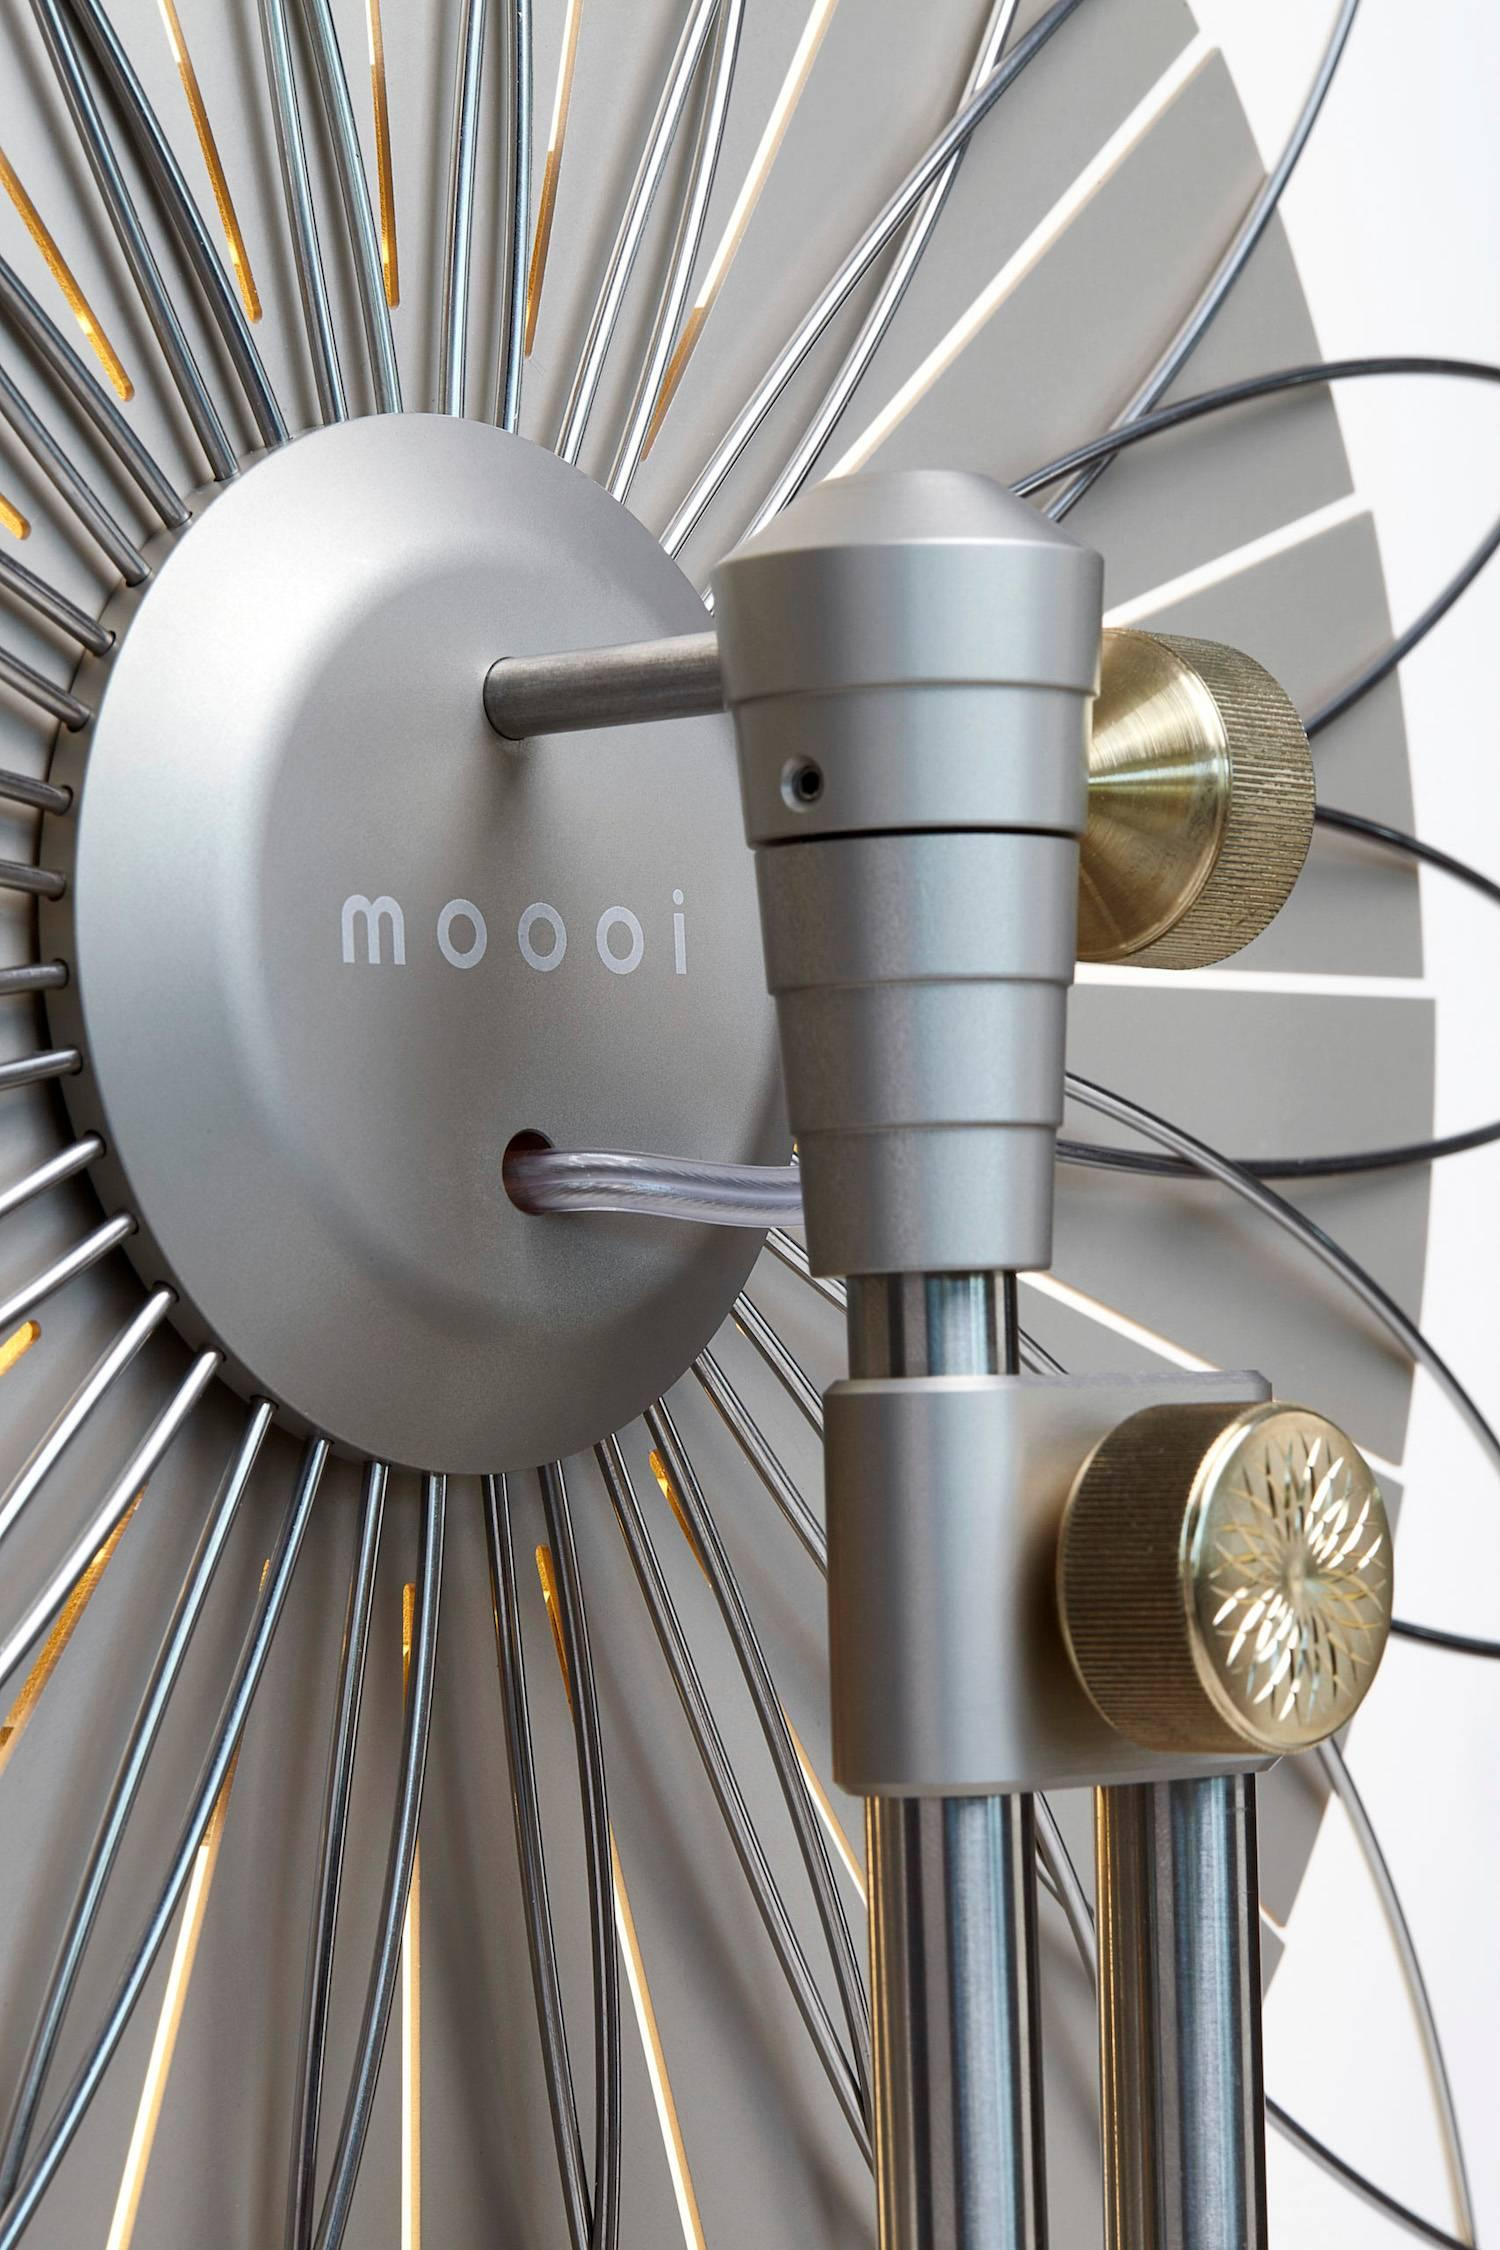 The Most Exquisite Italian Craftsmanship - Moooi Filigree Lamp craftsmanship Craftsmanship: The Most Exquisite Italian Arts and Crafts The Most Exquisite Italian Craftsmanship Moooi Filigree Lamp